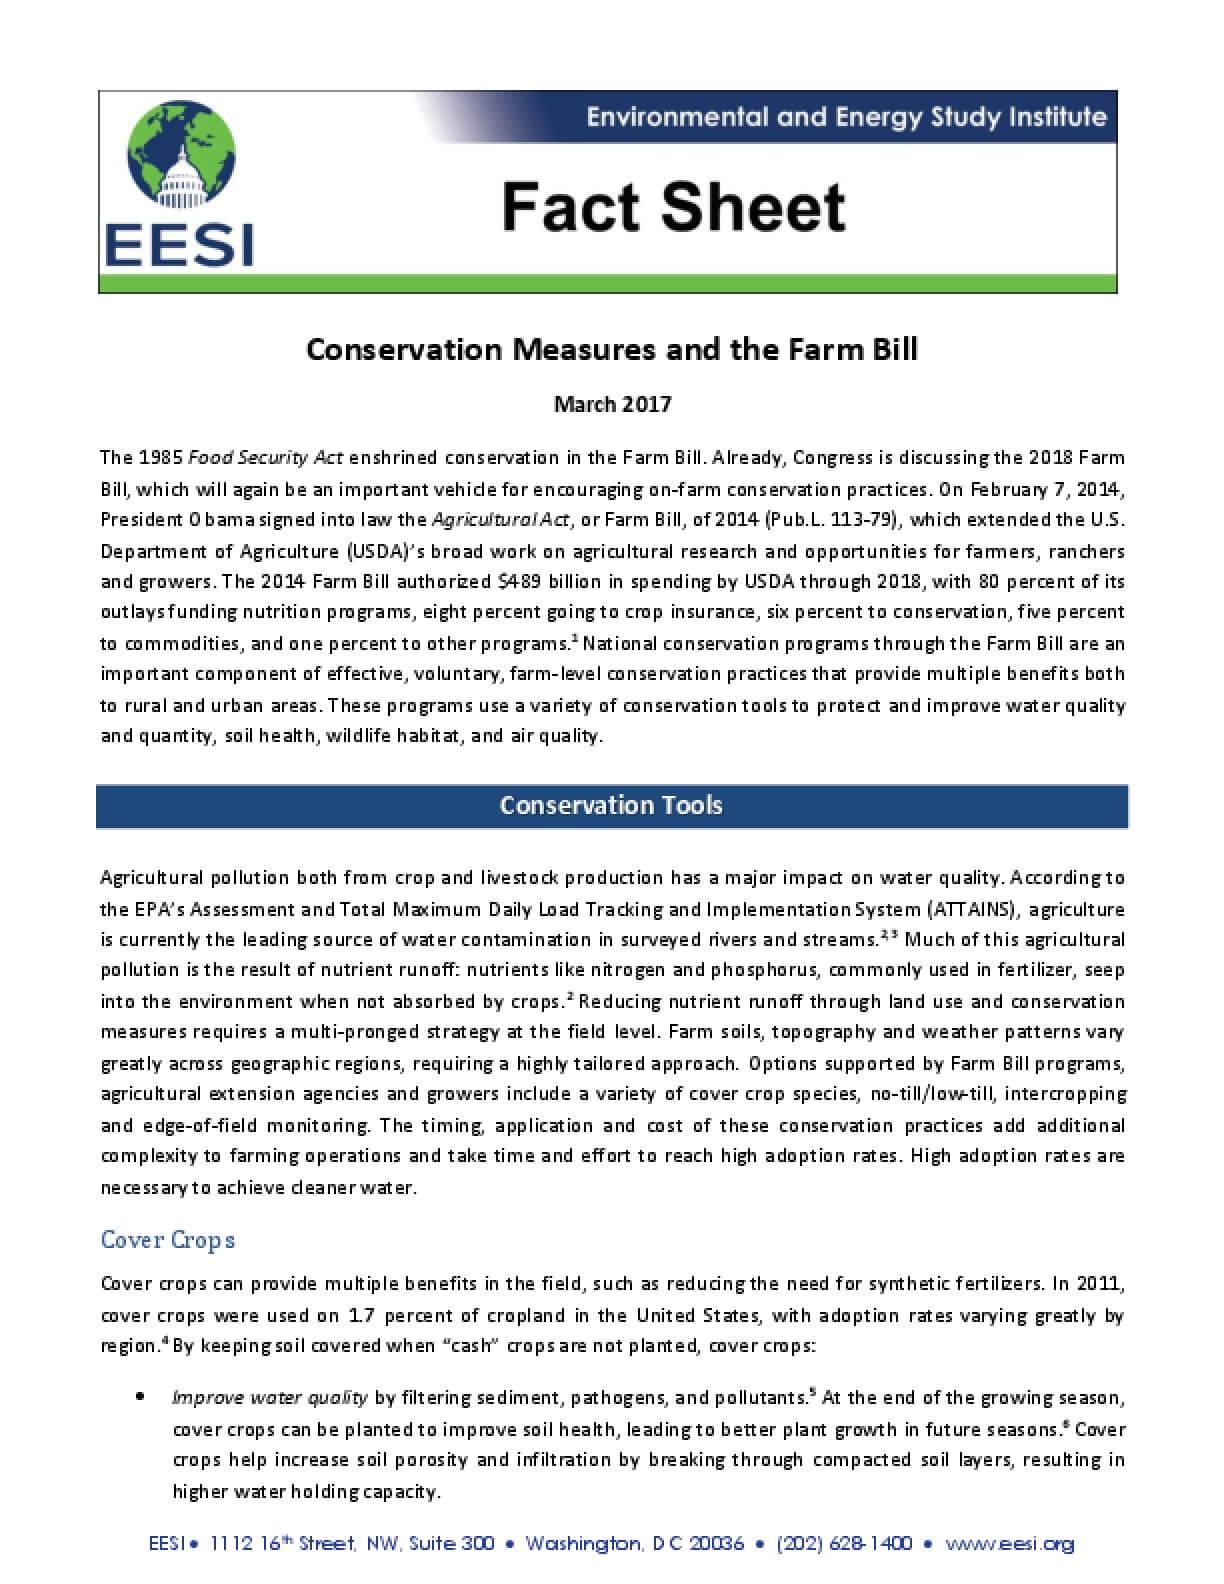 Fact Sheet: Conservation Measures and the Farm Bill - IssueLab